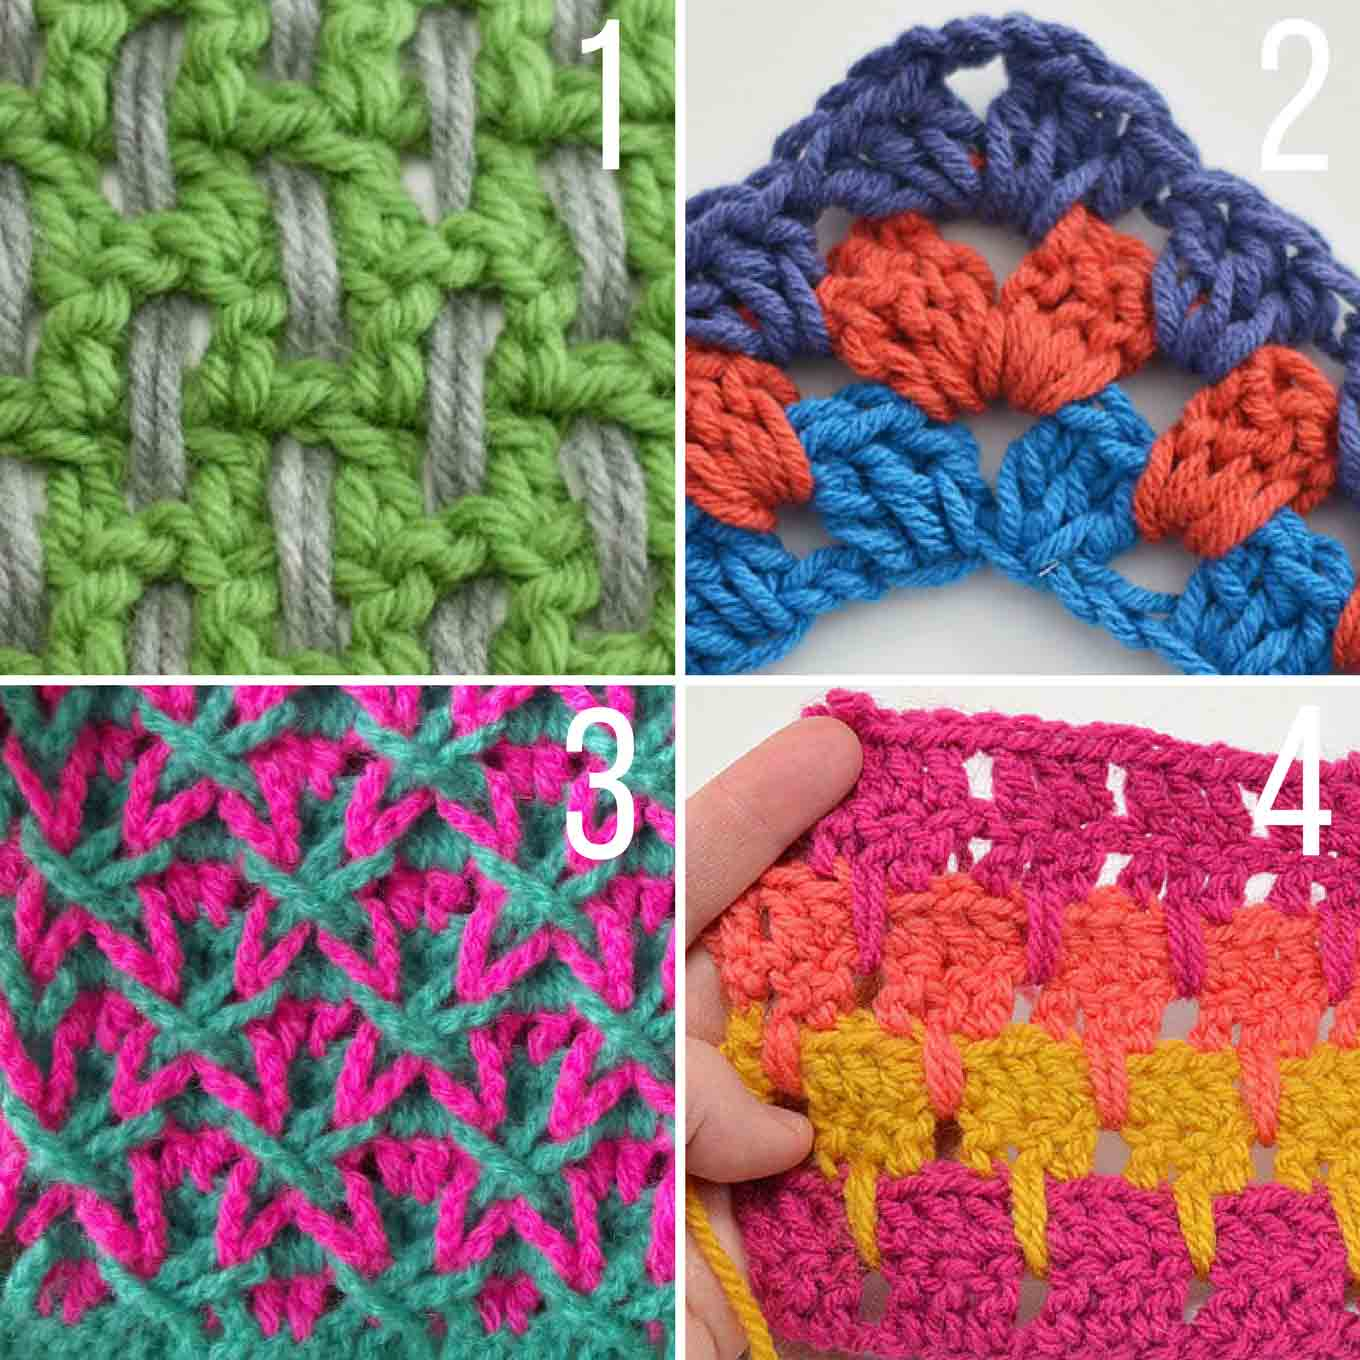 ... crochet stitches list has something for everyone--beginner to advanced